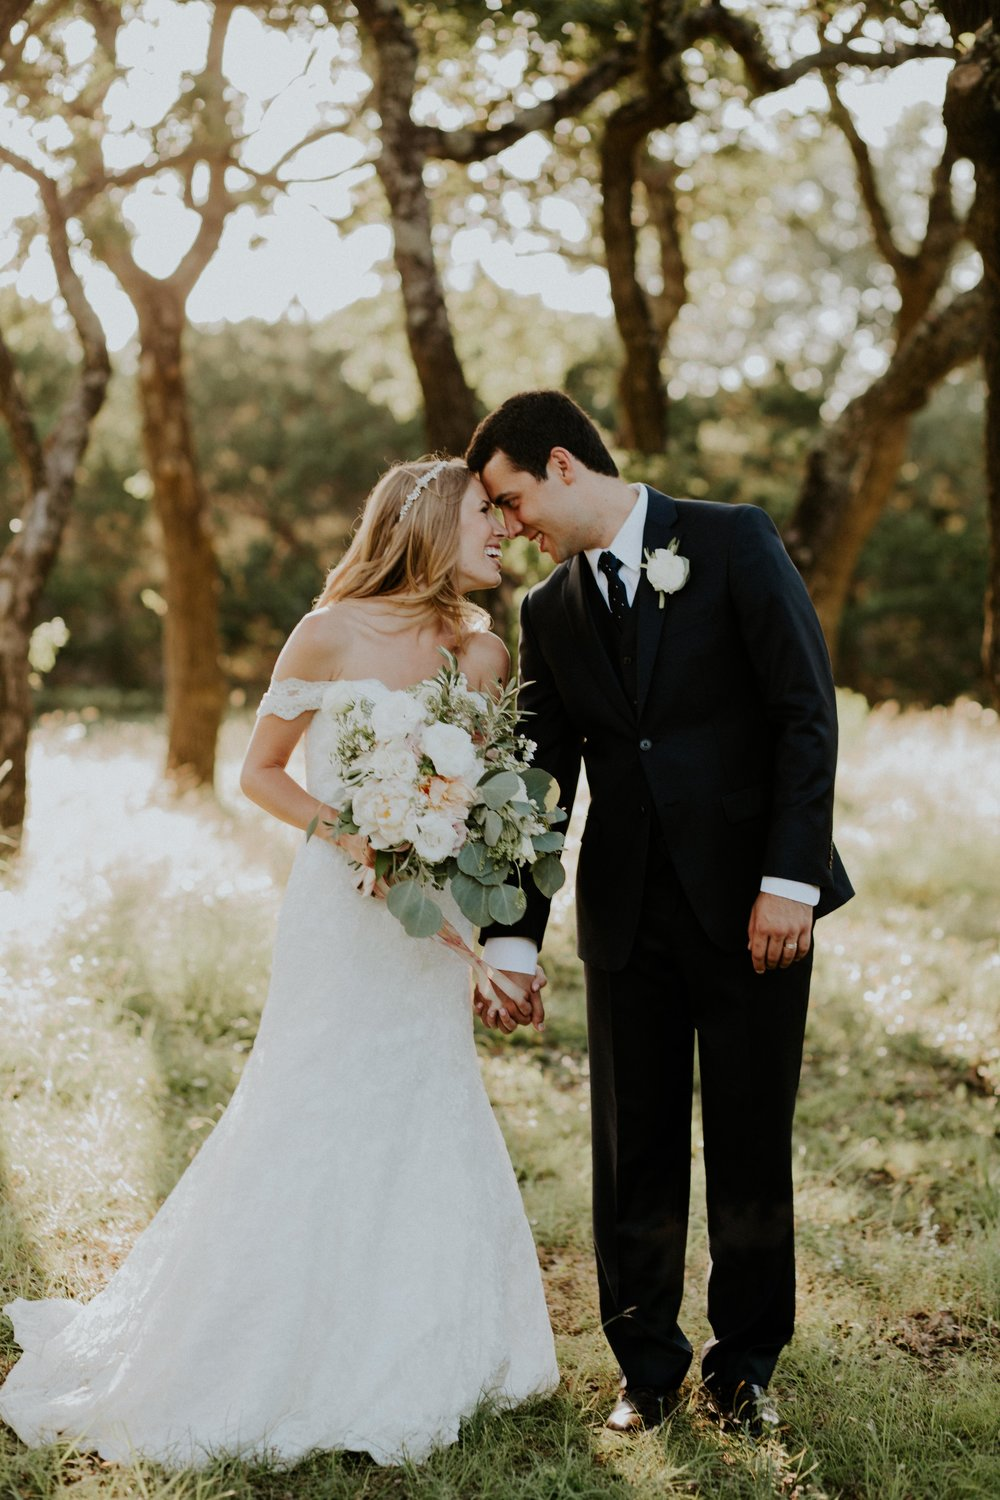 CarolineChase-Wedding62.jpg